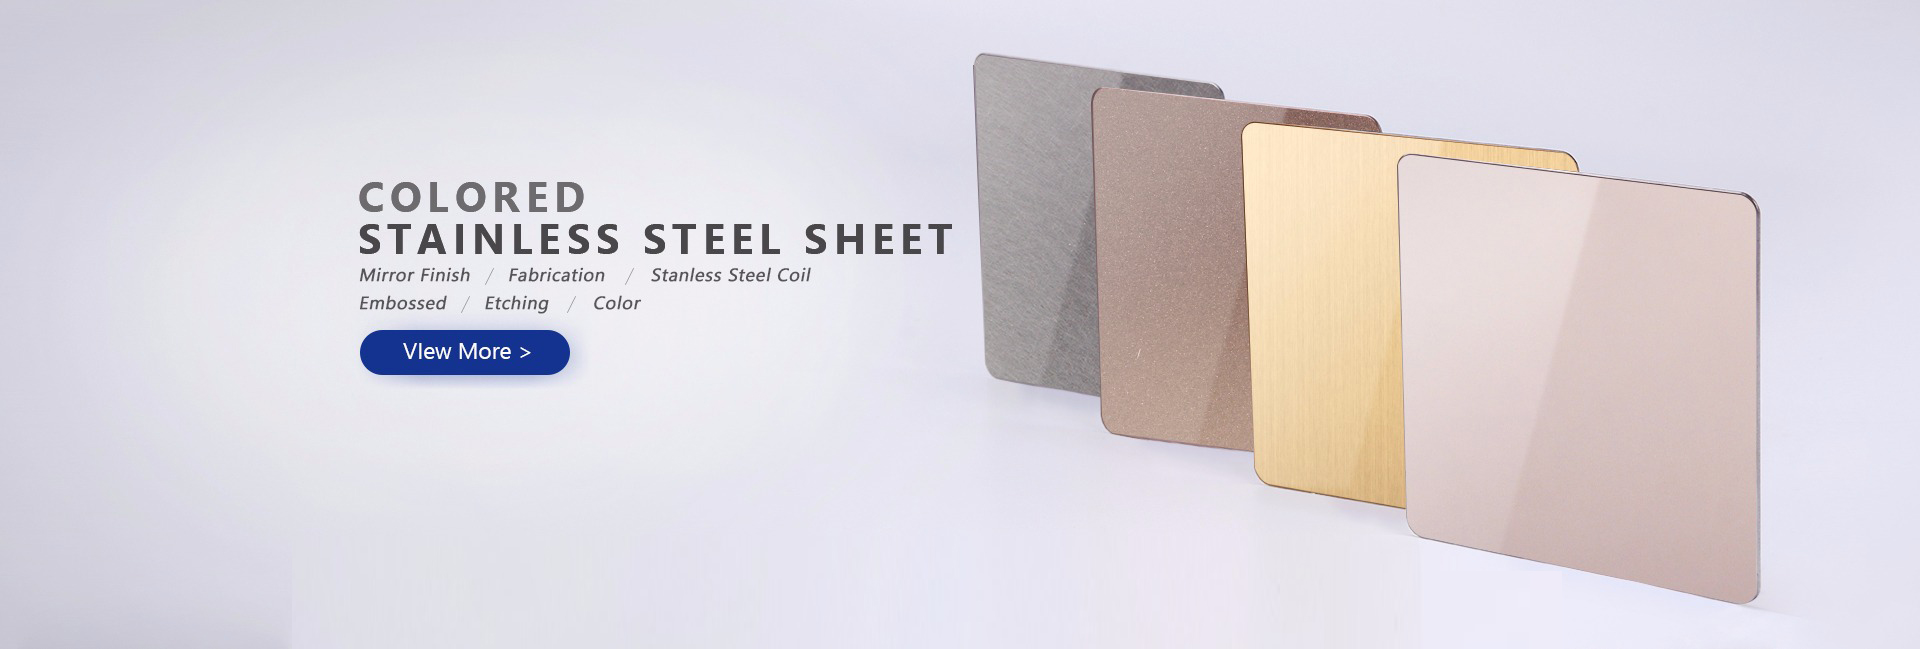 meibaotai decorative sheets